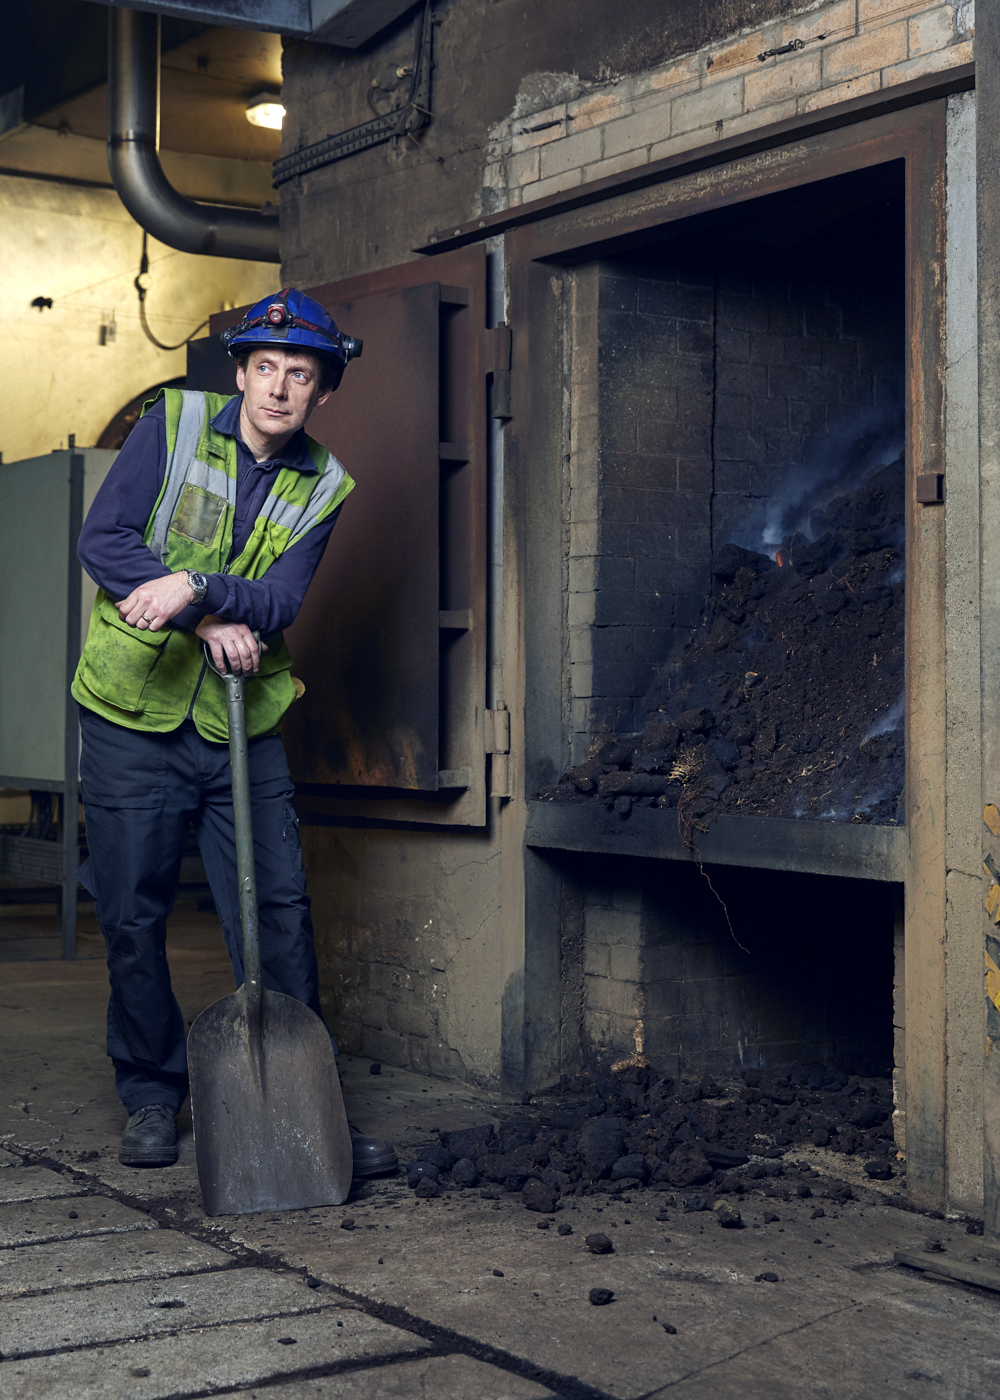 Peat is burnt in an open furnace to produce the flavour that's prominent in Islay Malt Whisky.